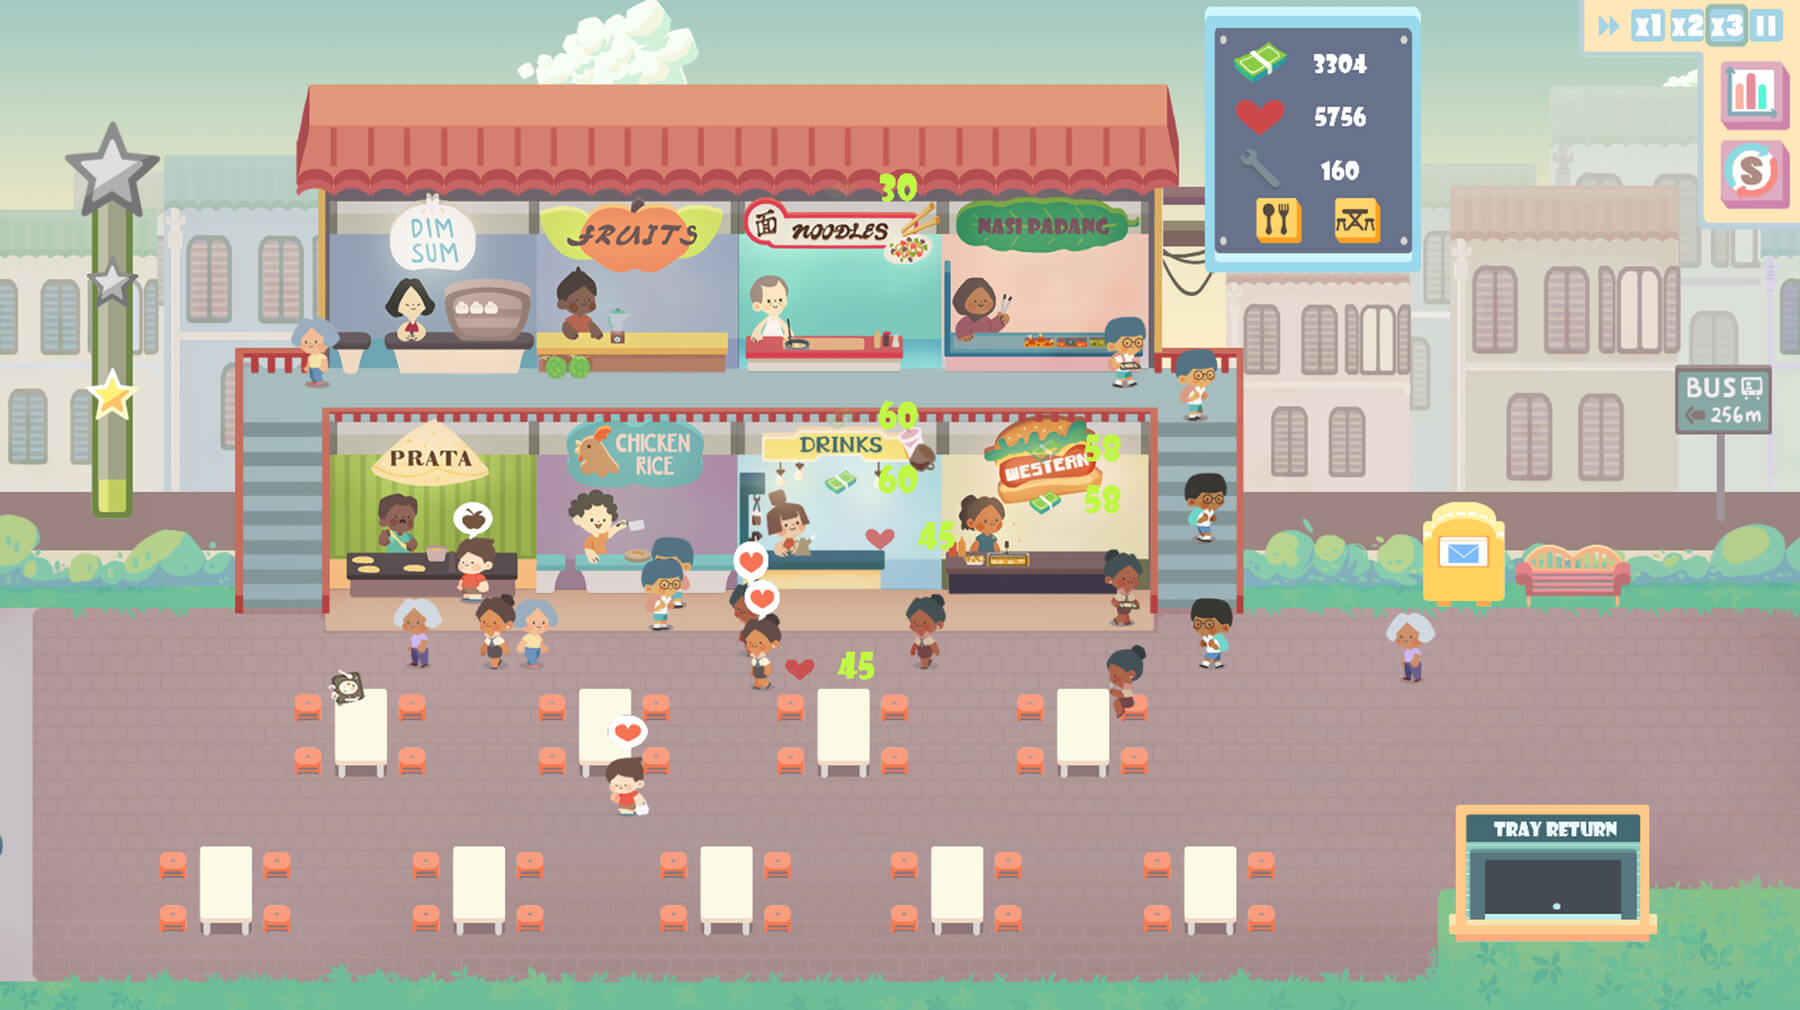 Kopitiam Ong game screenshot shows a top-down view of food vendors and customers.